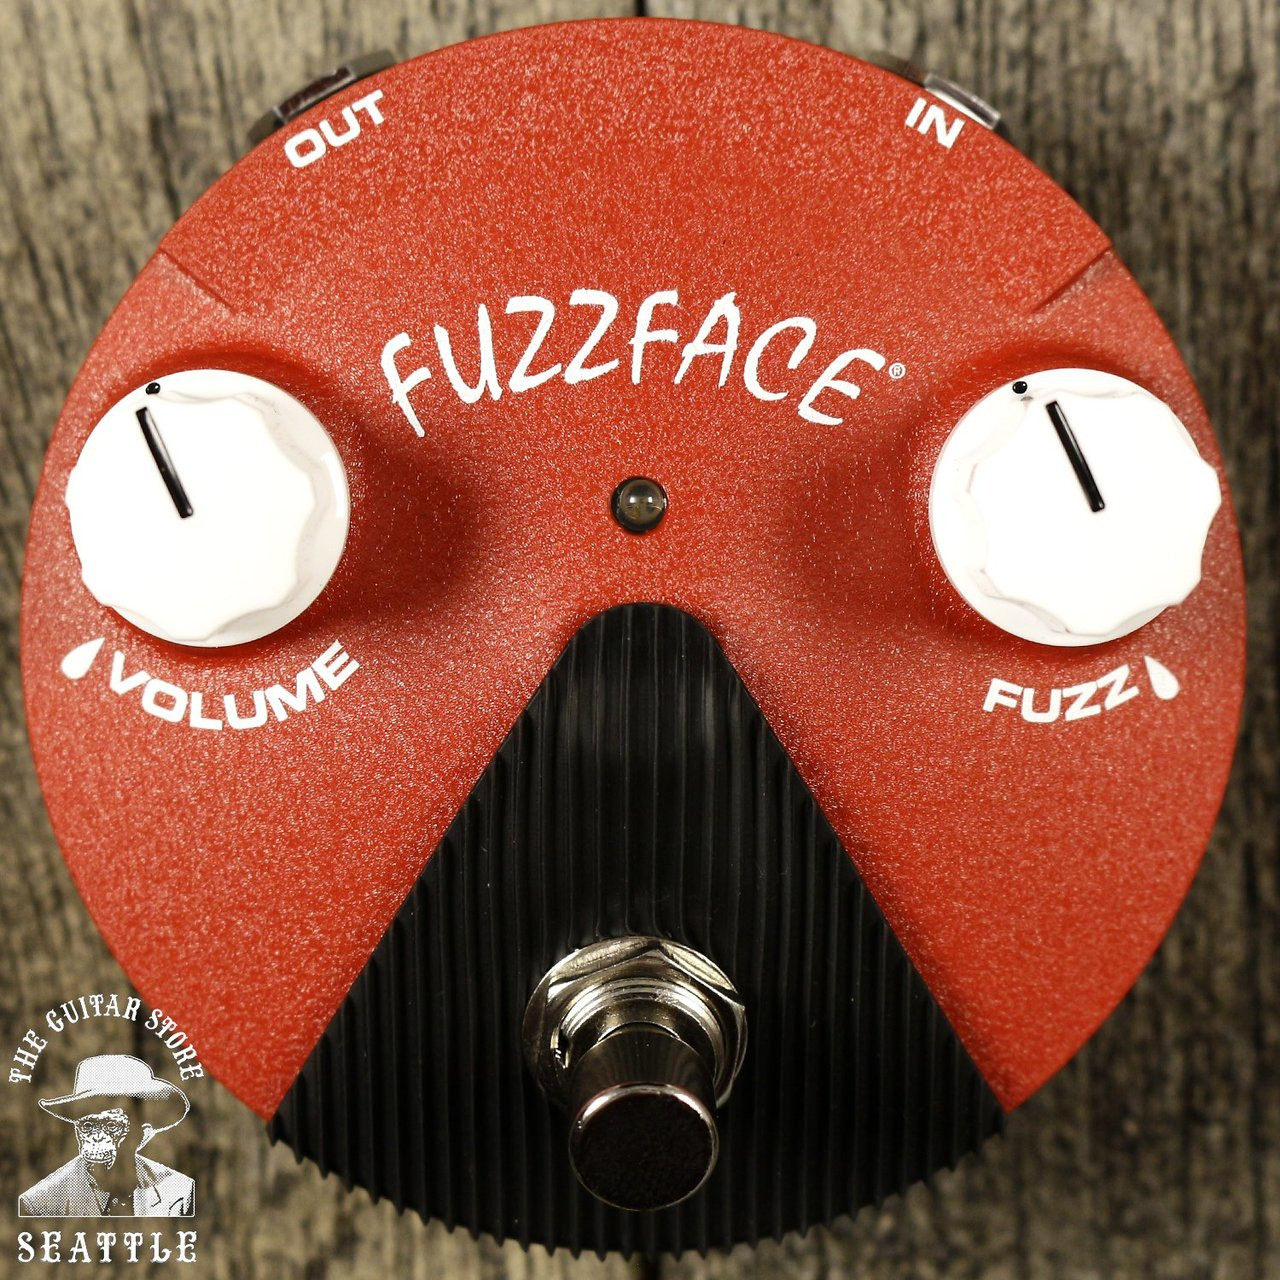 Dunlop Ffm6 Band Of Gypsys Fuzz Face Mini Distortion The Guitar Store Jimmy Hendrix Effect Schematic Diagram